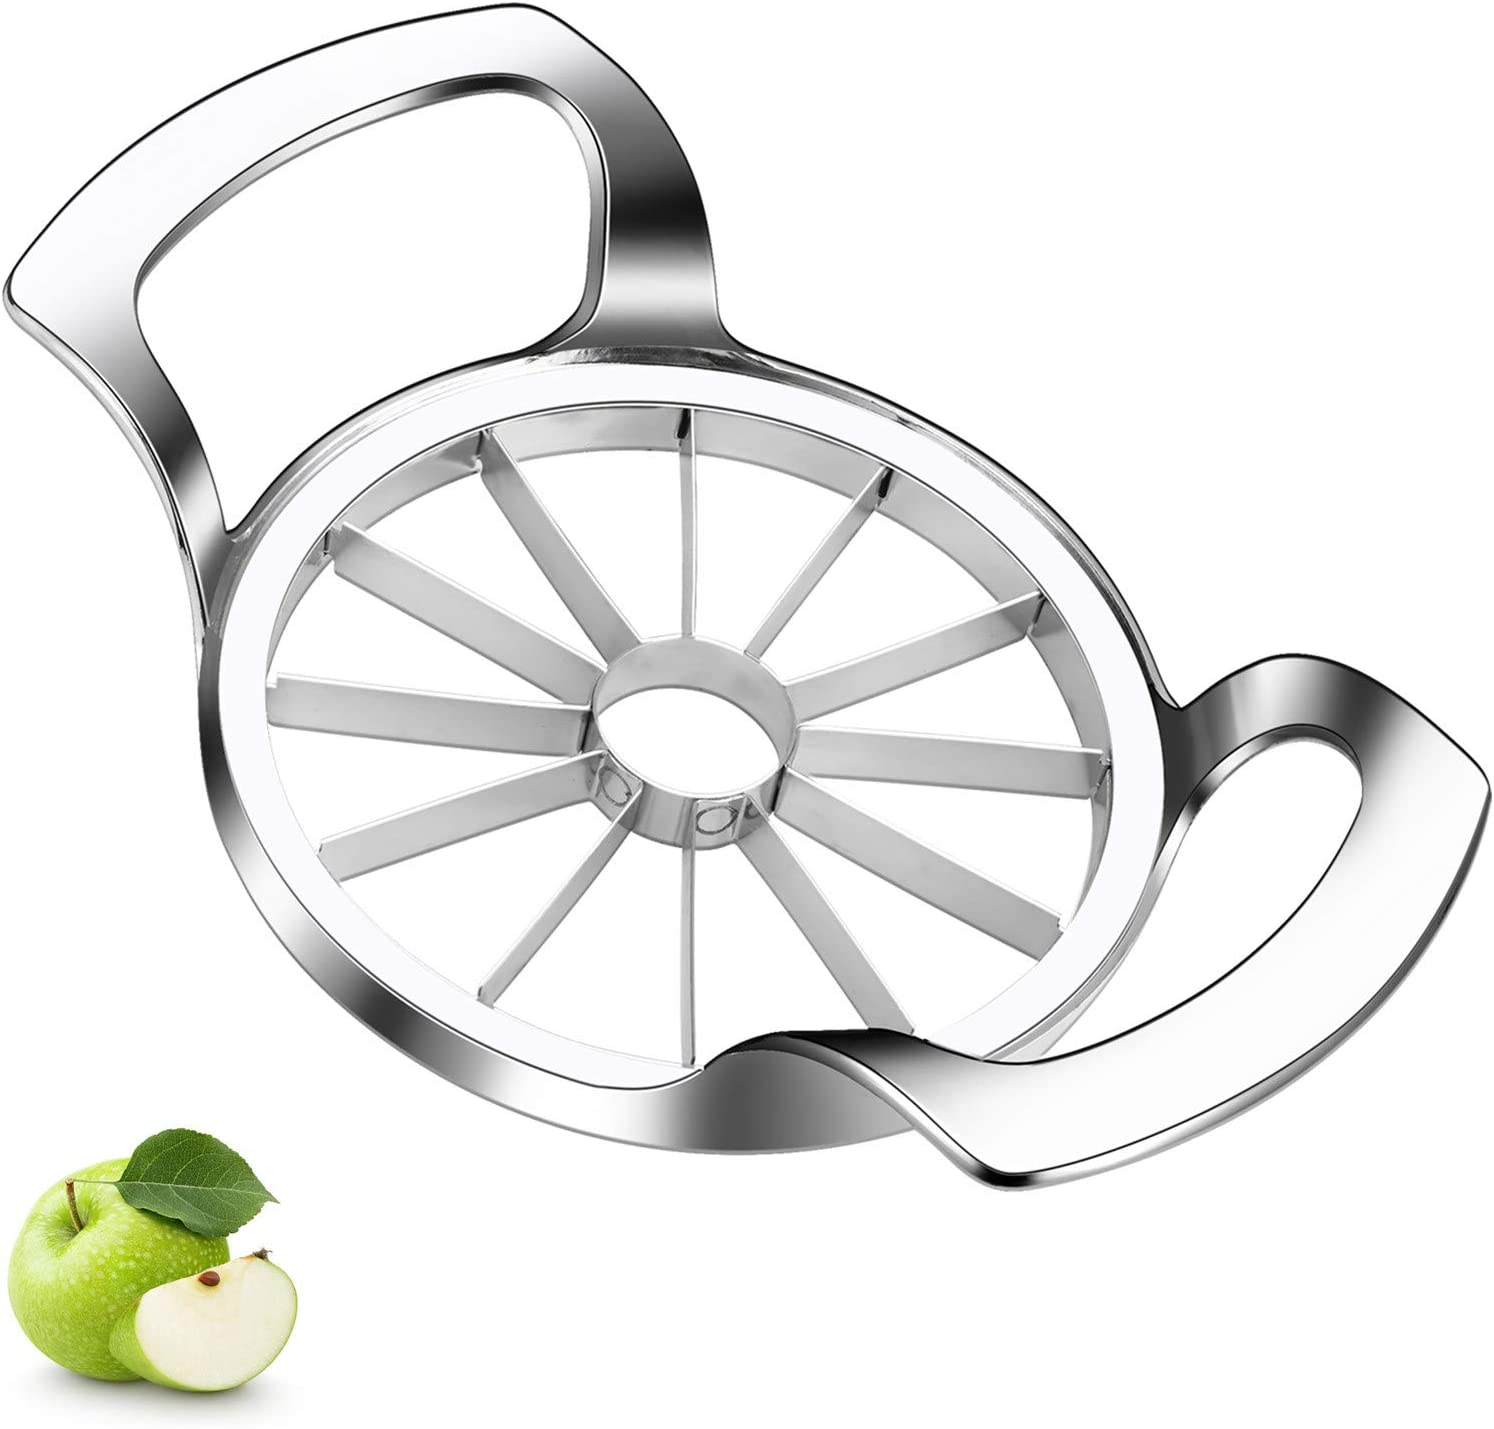 Upgraded Version Apple Corer Peeler, Jsdoin 12-Blade Extra Large Apple Slicer, Stainless Steel Ultra-Sharp Apple Cutter, Pitter, Divider for Up to 4 Inches Apples